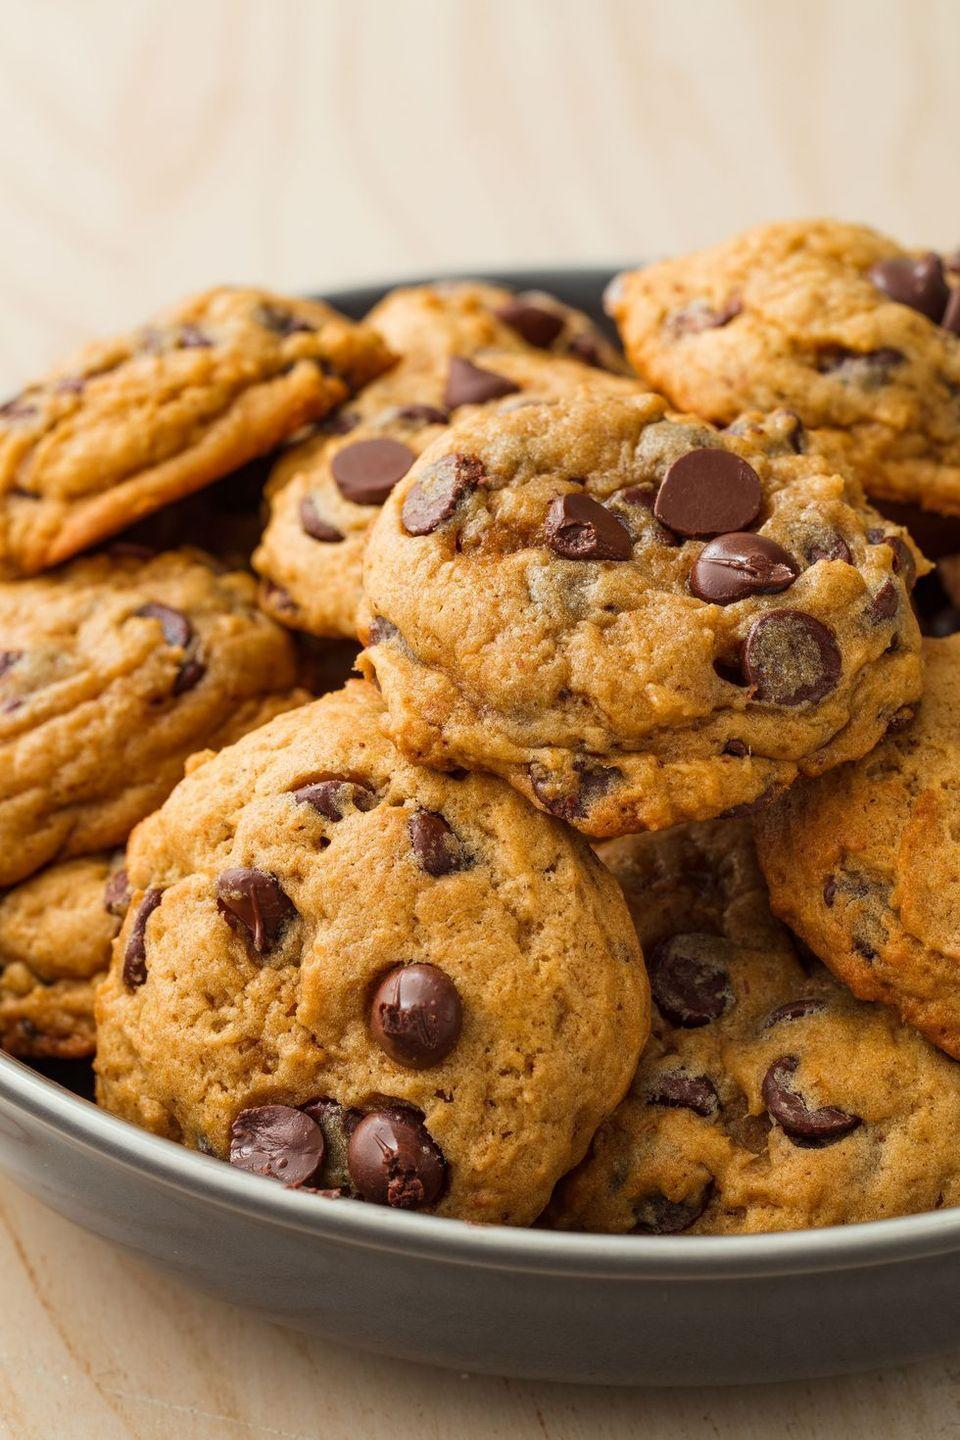 "<p>Cookies are snacks on holidays. It's a rule.</p><p>Get the recipe from <a href=""https://www.delish.com/cooking/recipe-ideas/recipes/a55742/pumpkin-spice-chocolate-chip-cookies-recipe/"" rel=""nofollow noopener"" target=""_blank"" data-ylk=""slk:Delish"" class=""link rapid-noclick-resp"">Delish</a>.</p>"